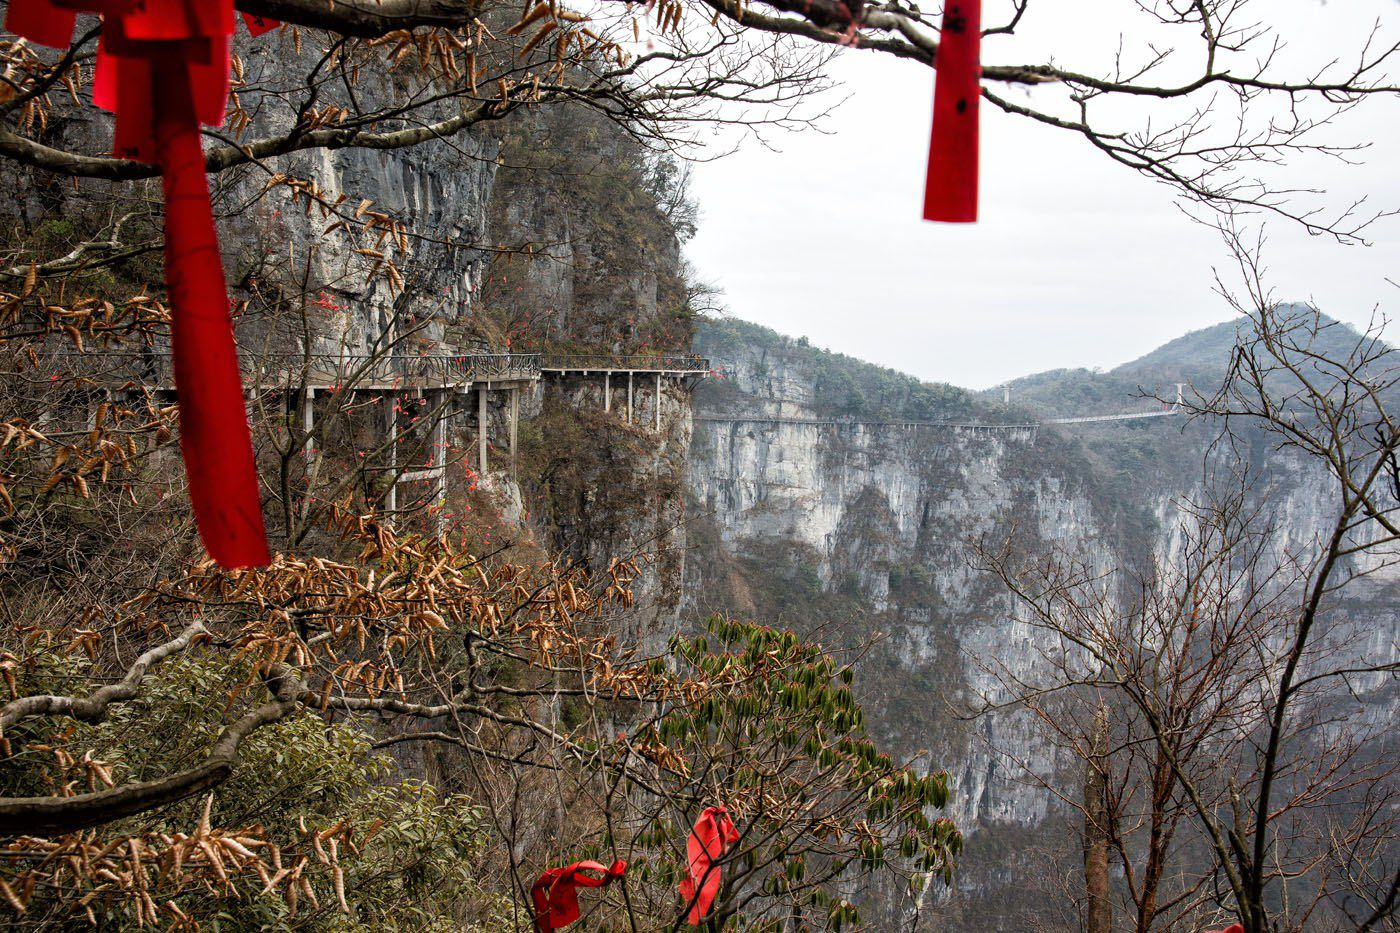 Tianmen Plank Road View